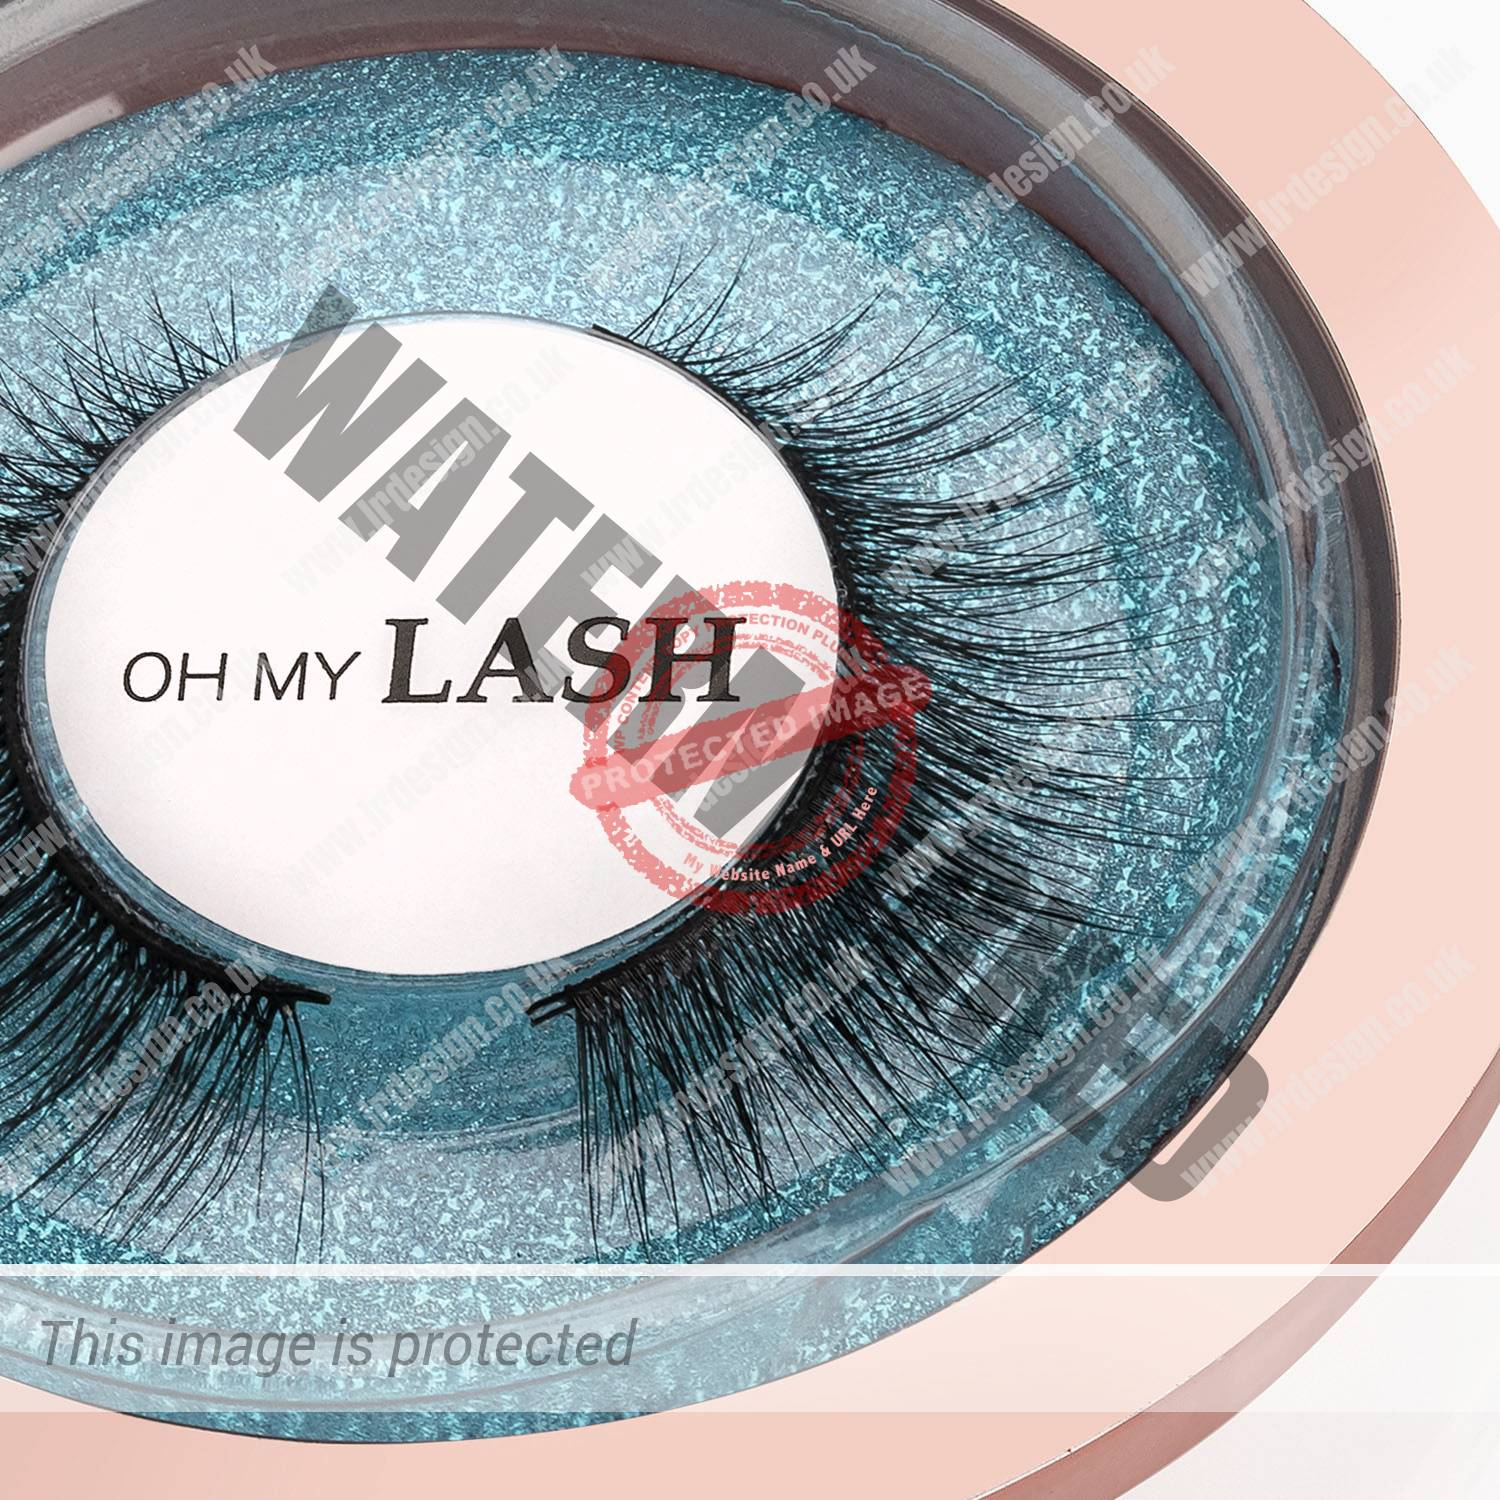 Close up of Oh My Lash blue compact.